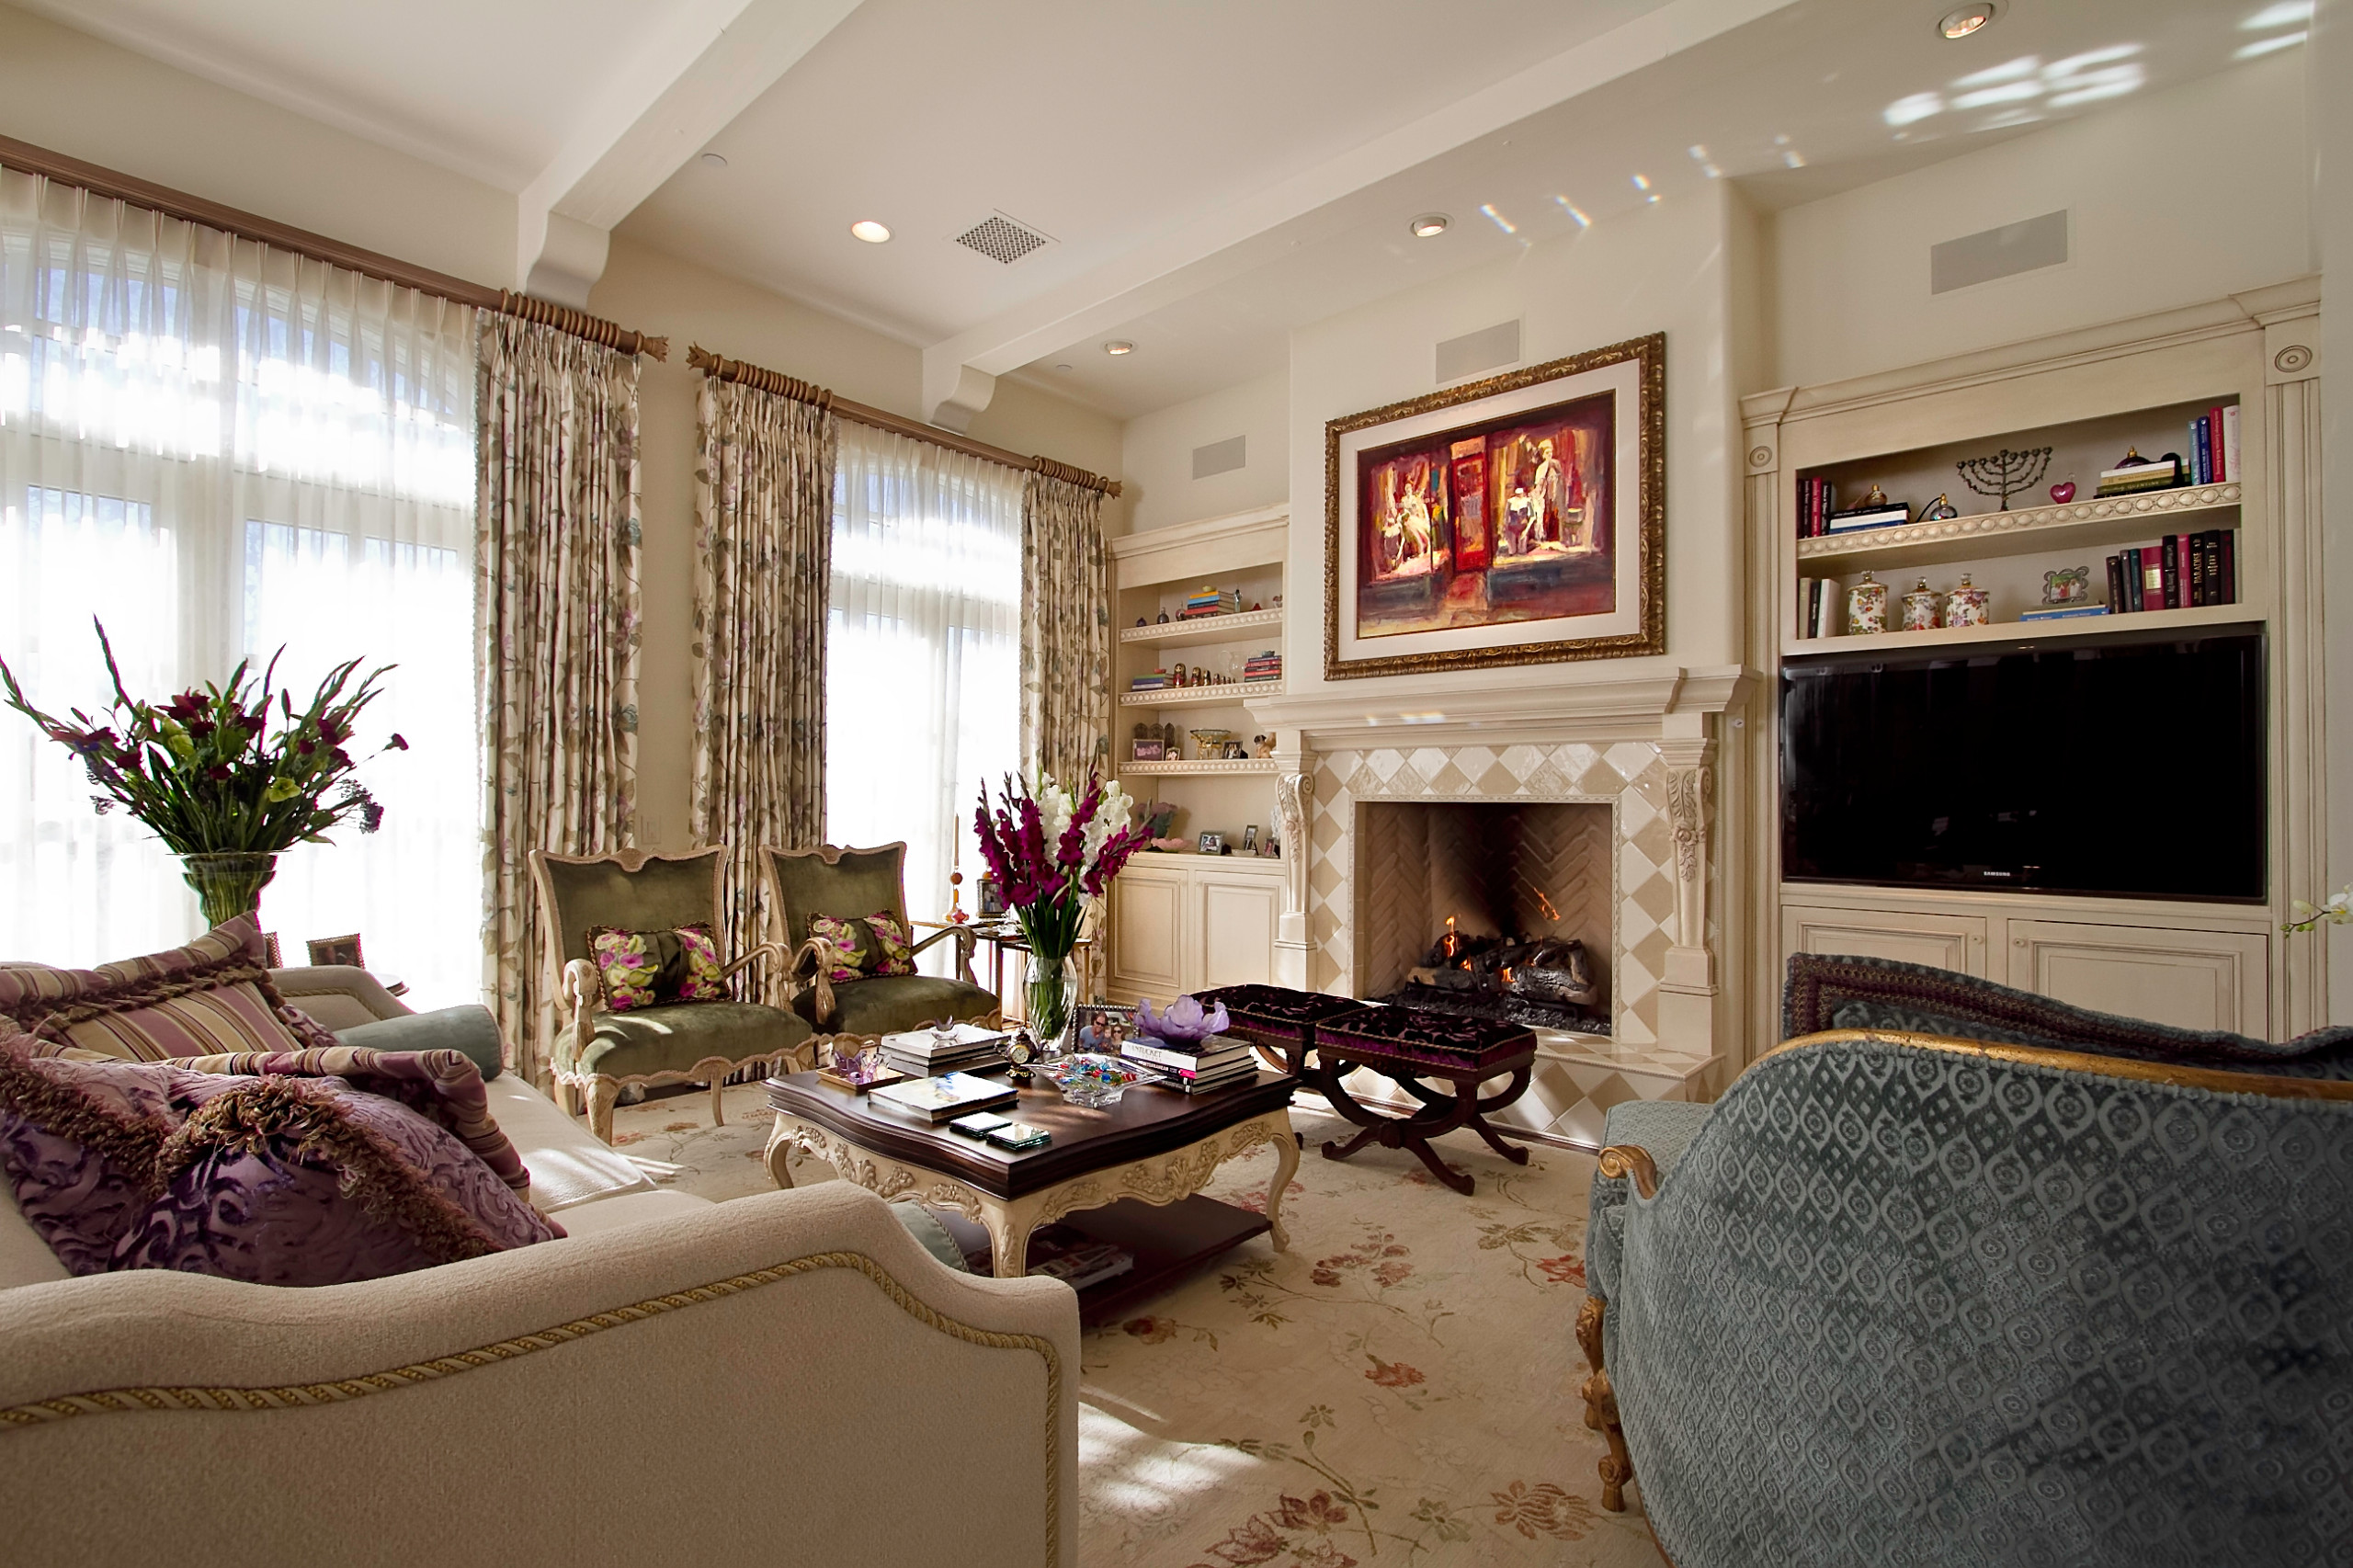 * 2011 THIRD PLACE - ASID - RESIDENTIAL * Scottsdale Elegance